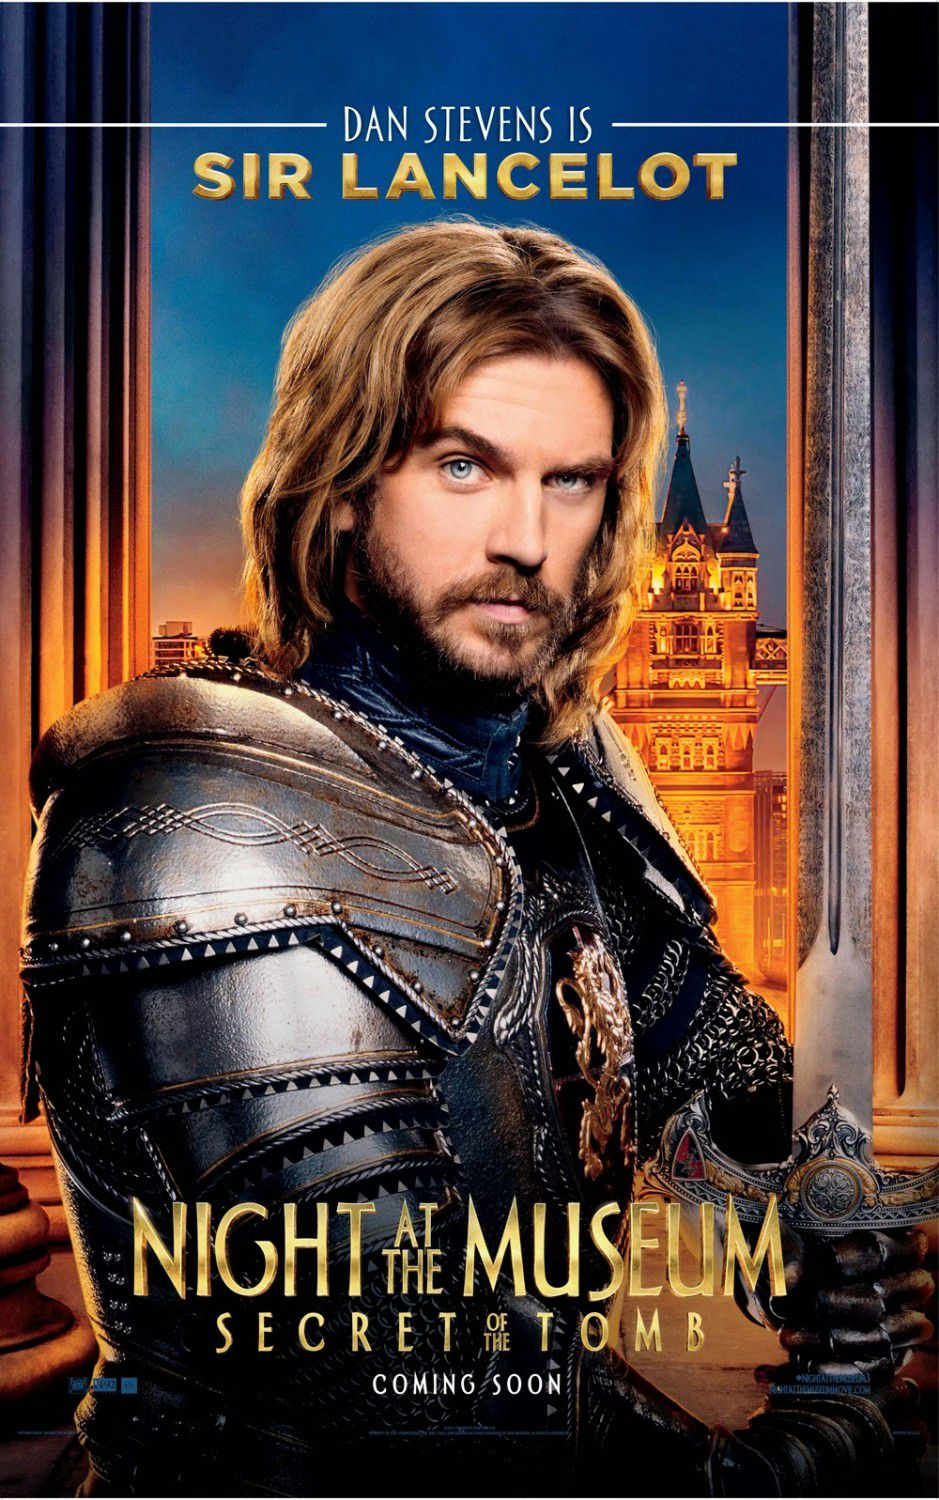 Una Notte al Museo 3 - Night at the Museum 3 - Secret of the Tomb - poster - Sir Lancelot (Dan Stevens)